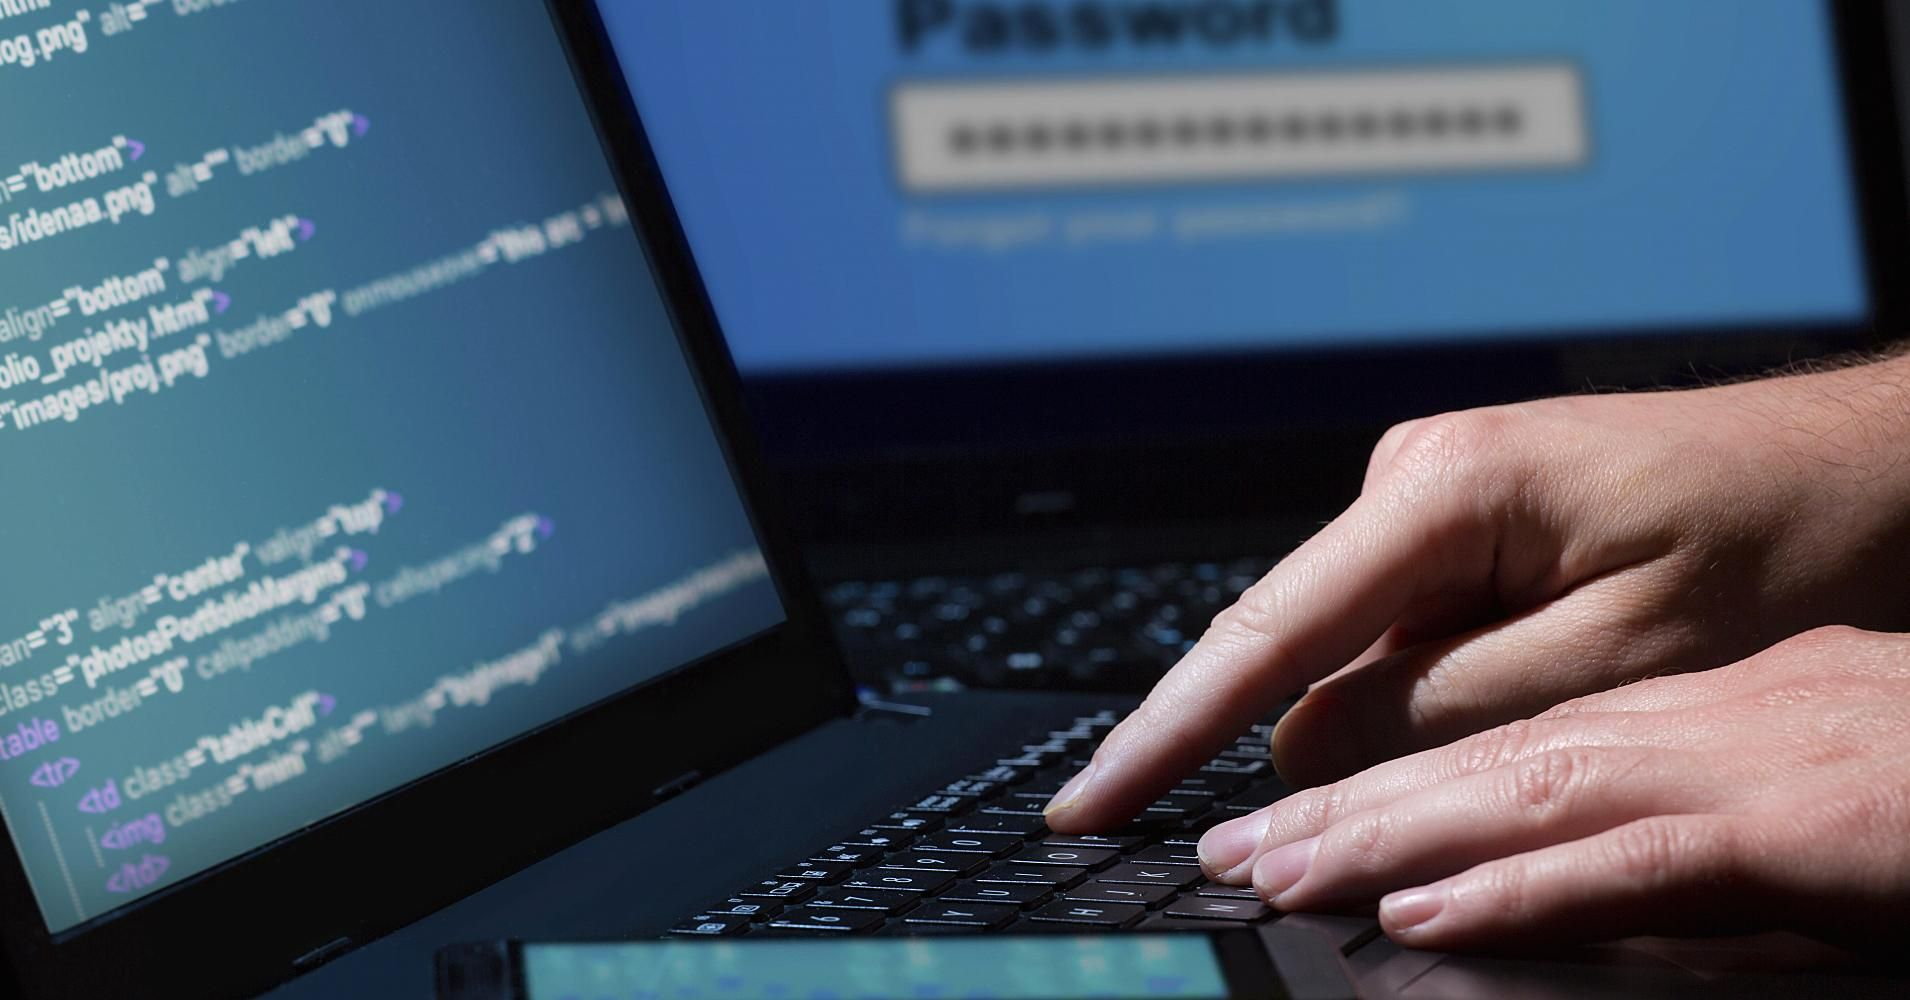 The 2016 trends in cybercrime that you need to know about